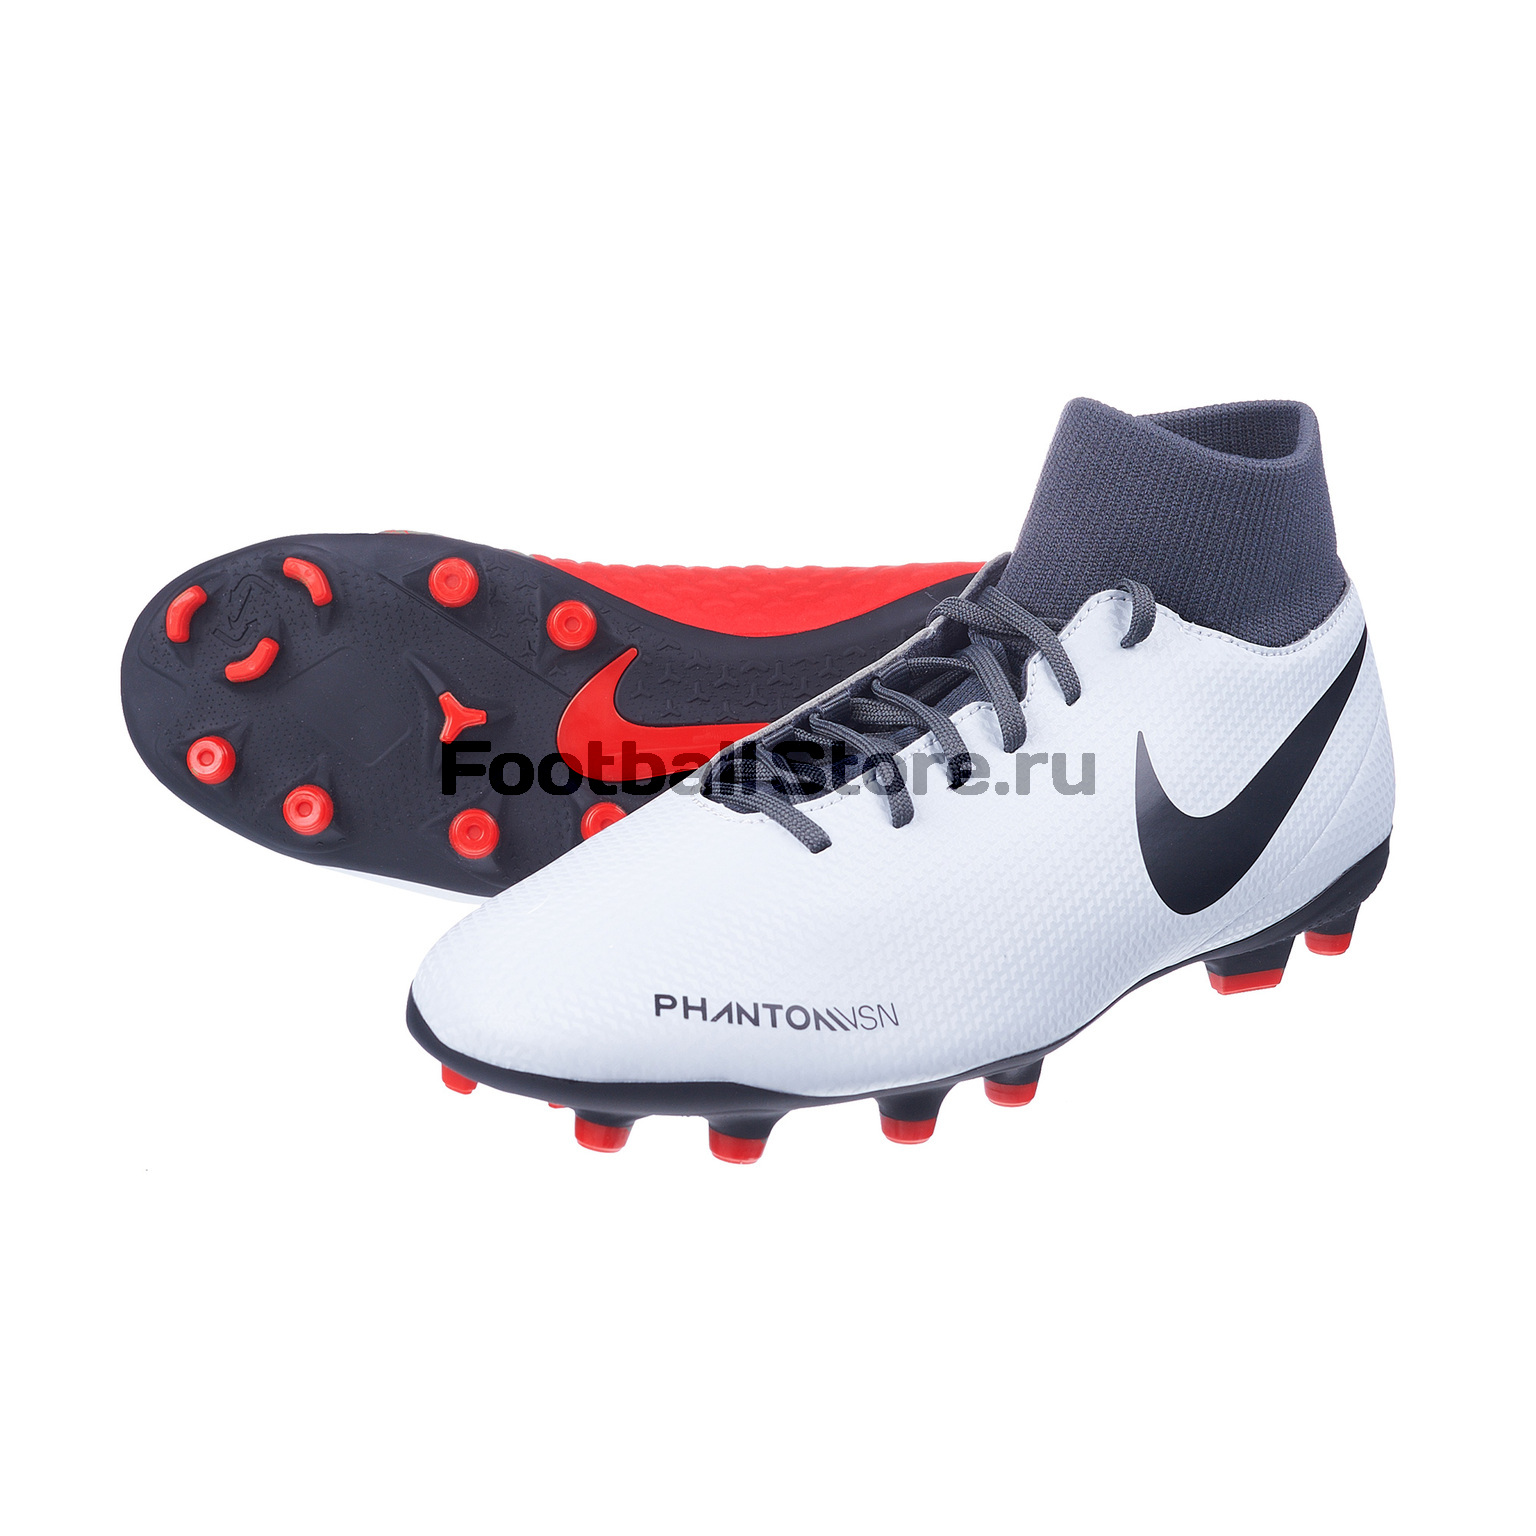 Бутсы Nike Phantom Vision Club DF FG/MG AJ6959-060 бутсы детские nike phantom vision academy df fg mg ao3287 600